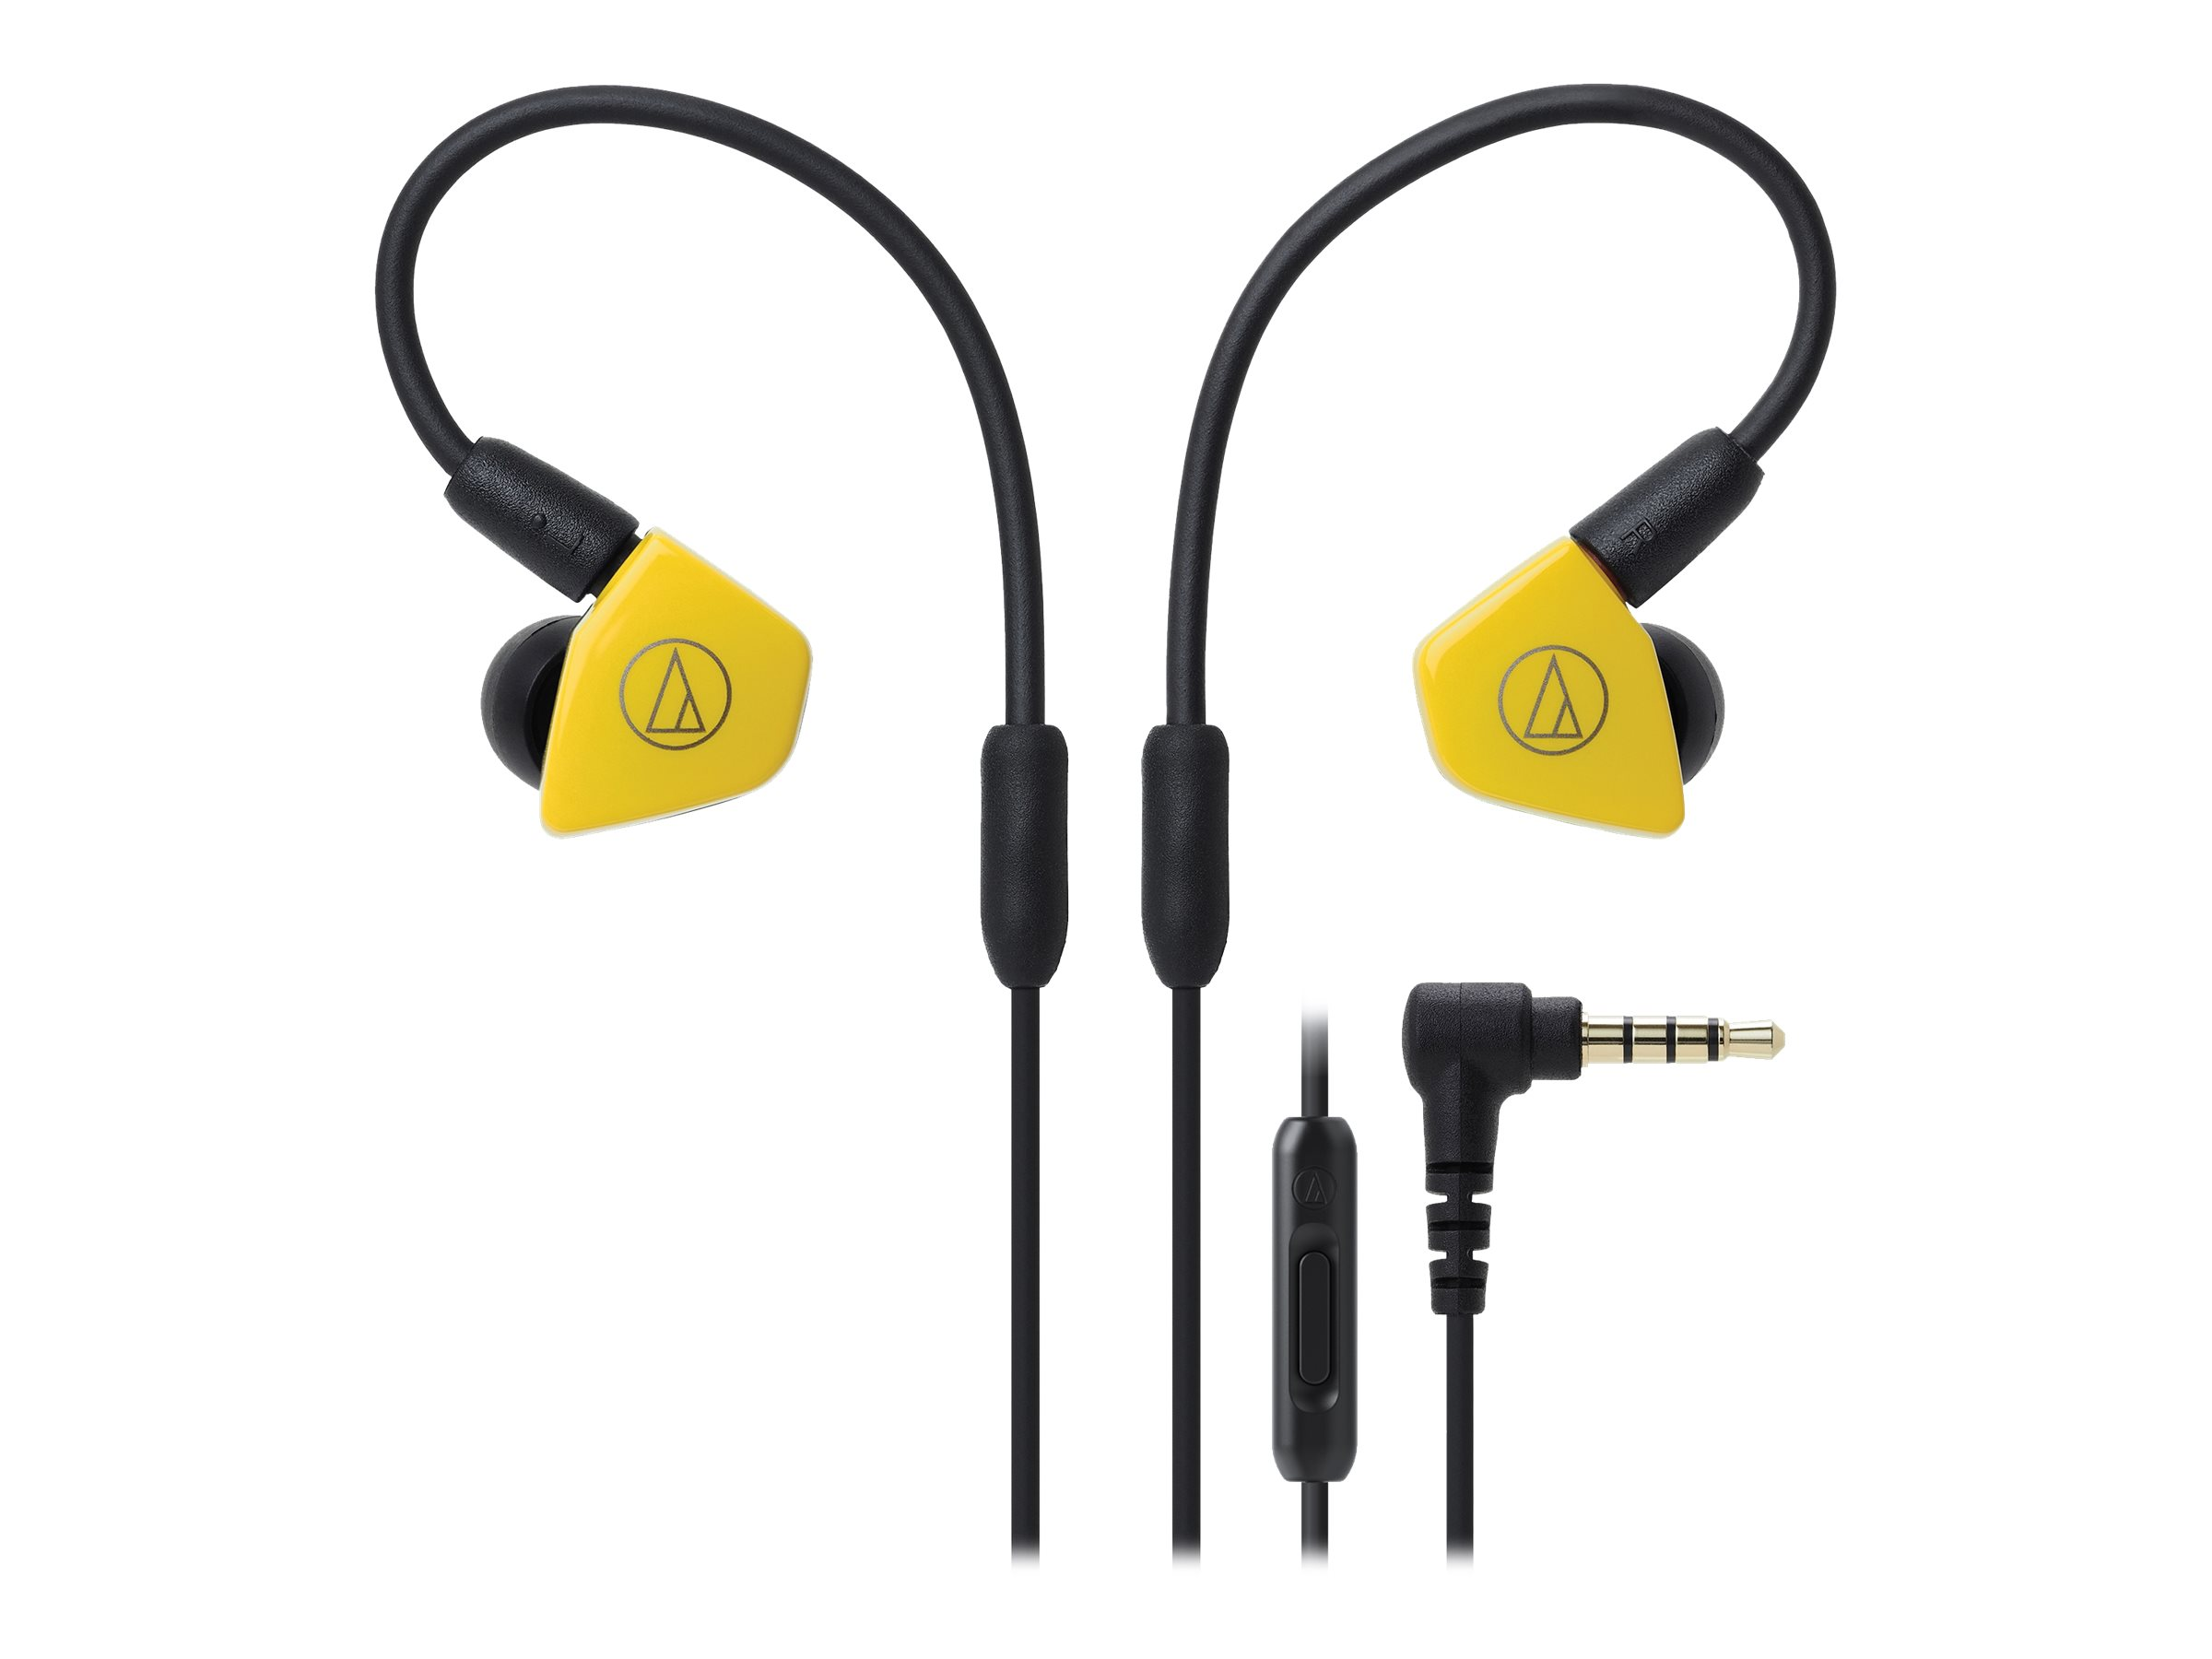 Audio-Technica ATH-LS50ISYL - earphones with mic